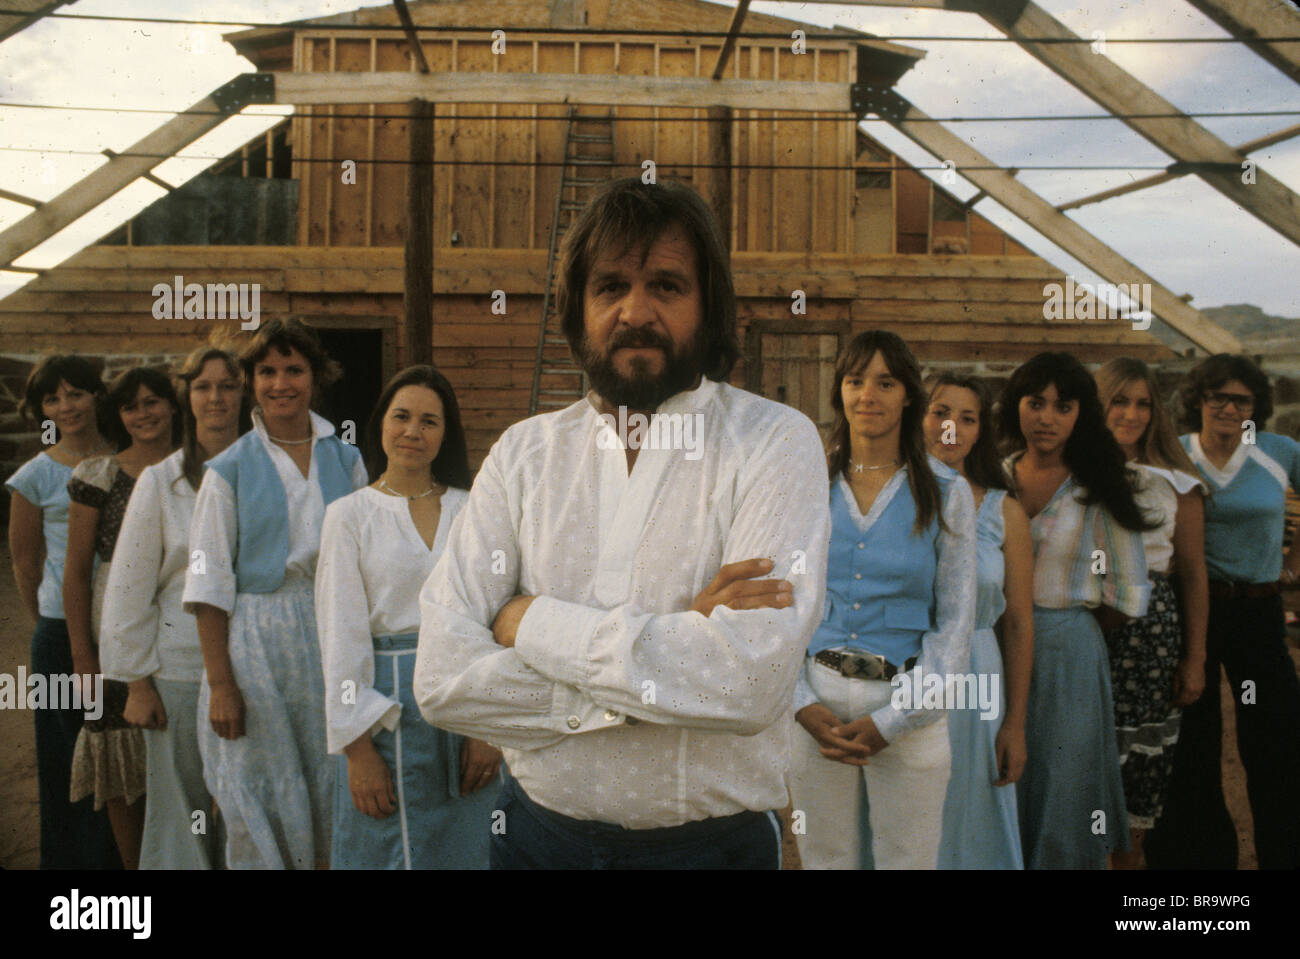 Polygamist Alex Joseph and his wives at home on Nevada Utah border in late 1970s, USA - Stock Image